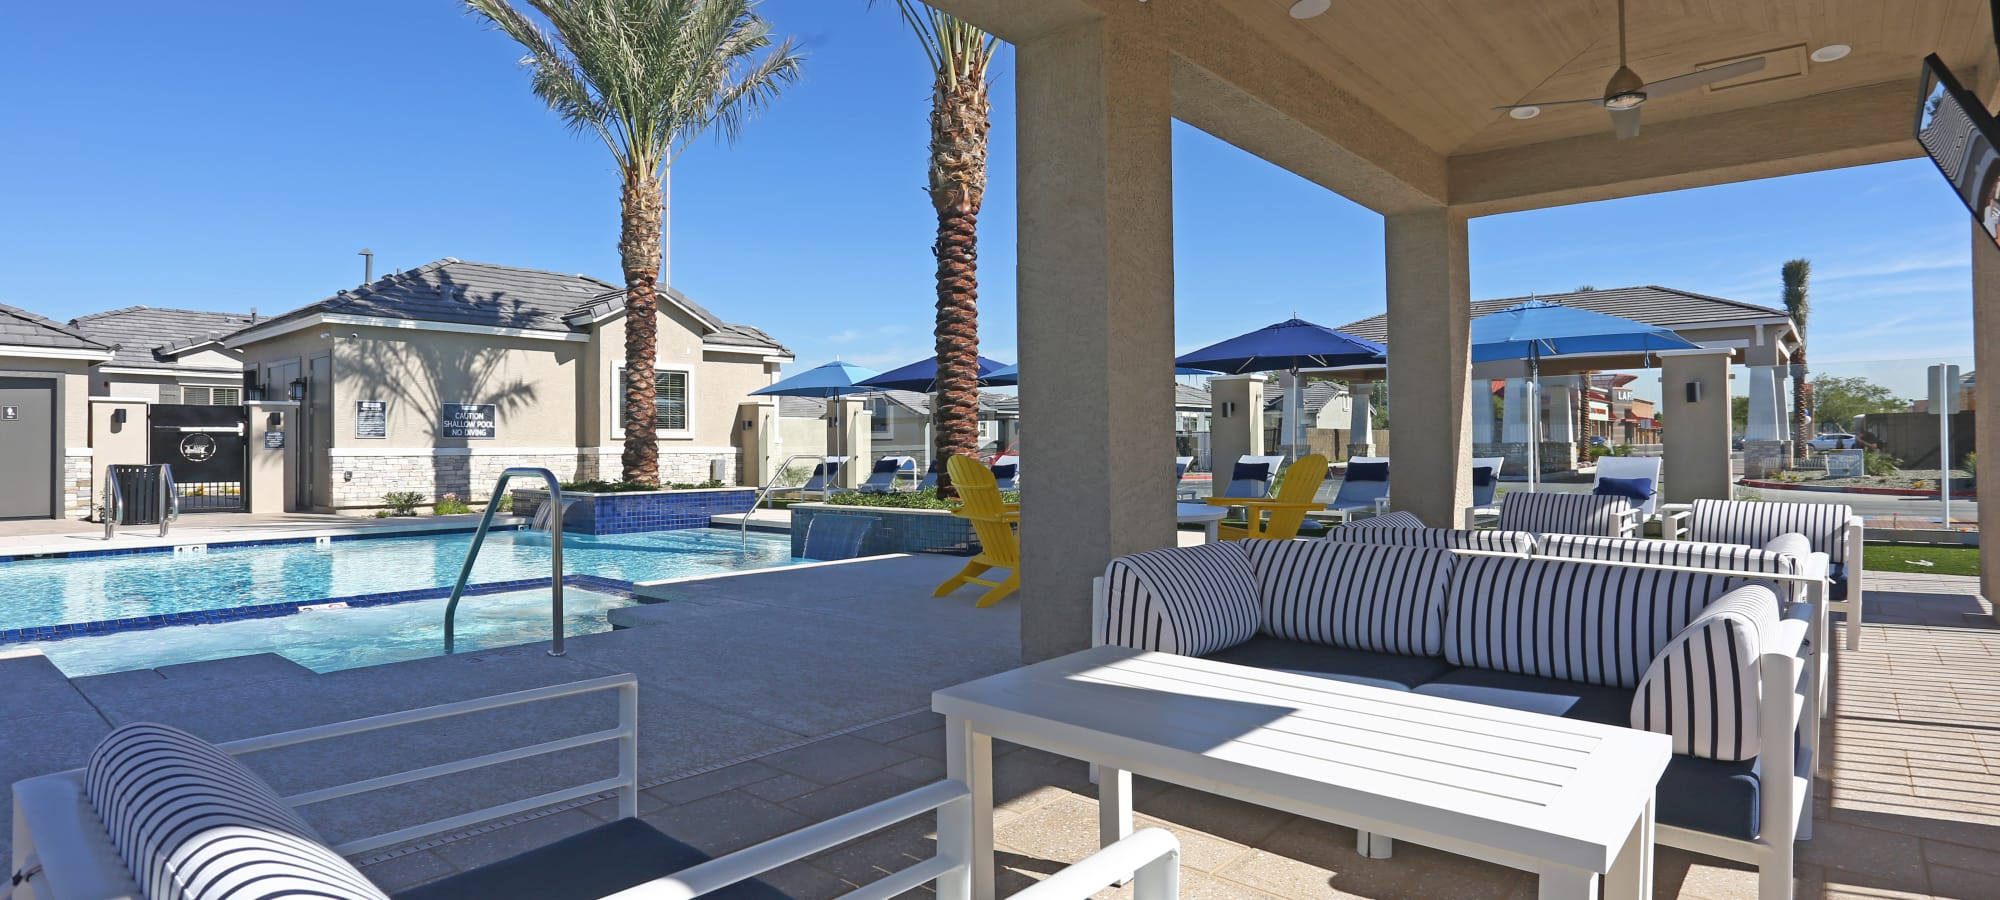 Lounge seating near the pool at Christopher Todd Communities On Camelback in Litchfield Park, Arizona